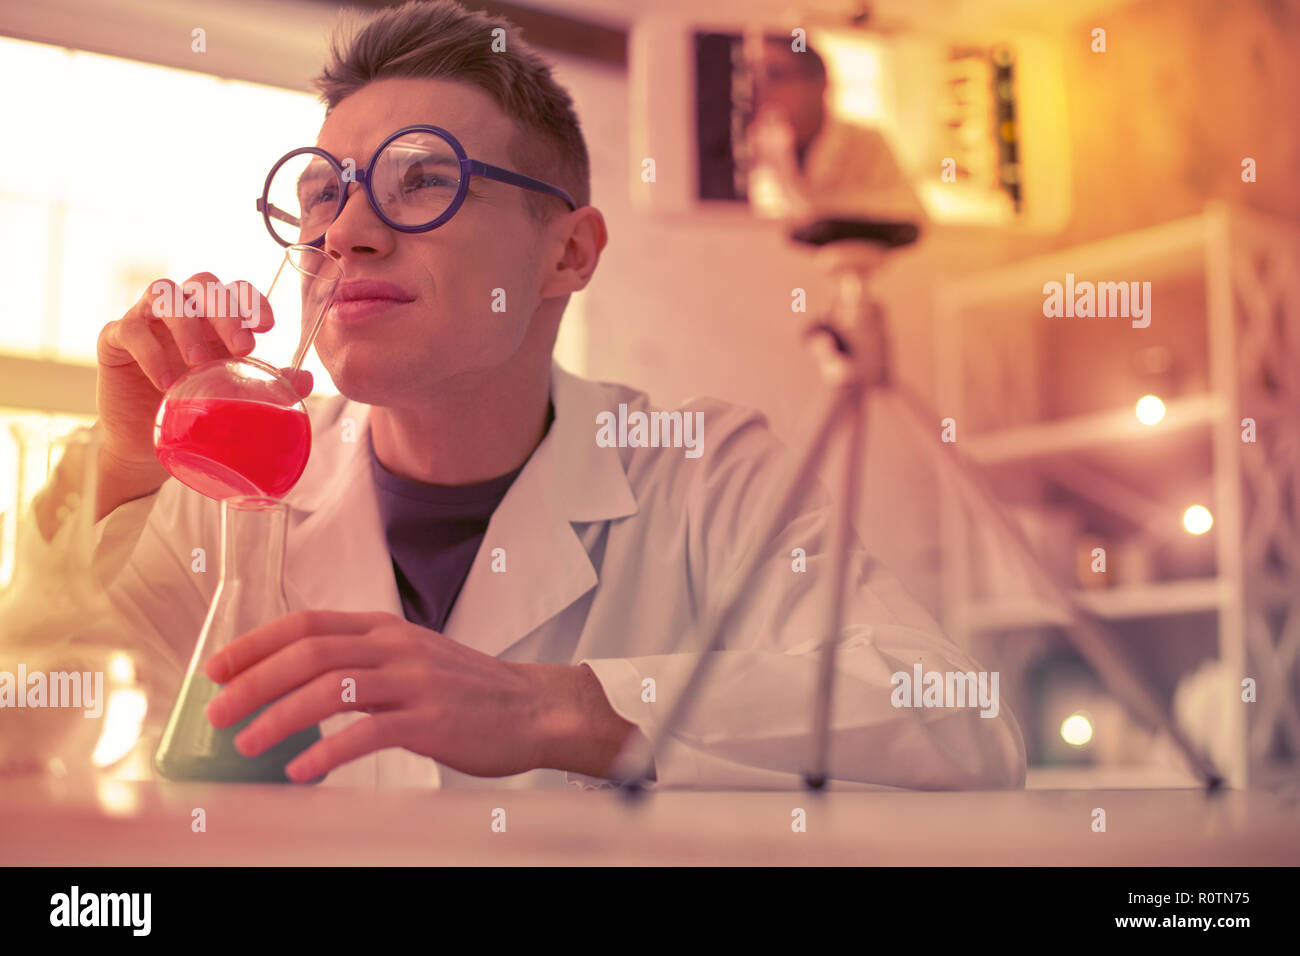 Blond puzzled man smelling unpleasant red reagent - Stock Image